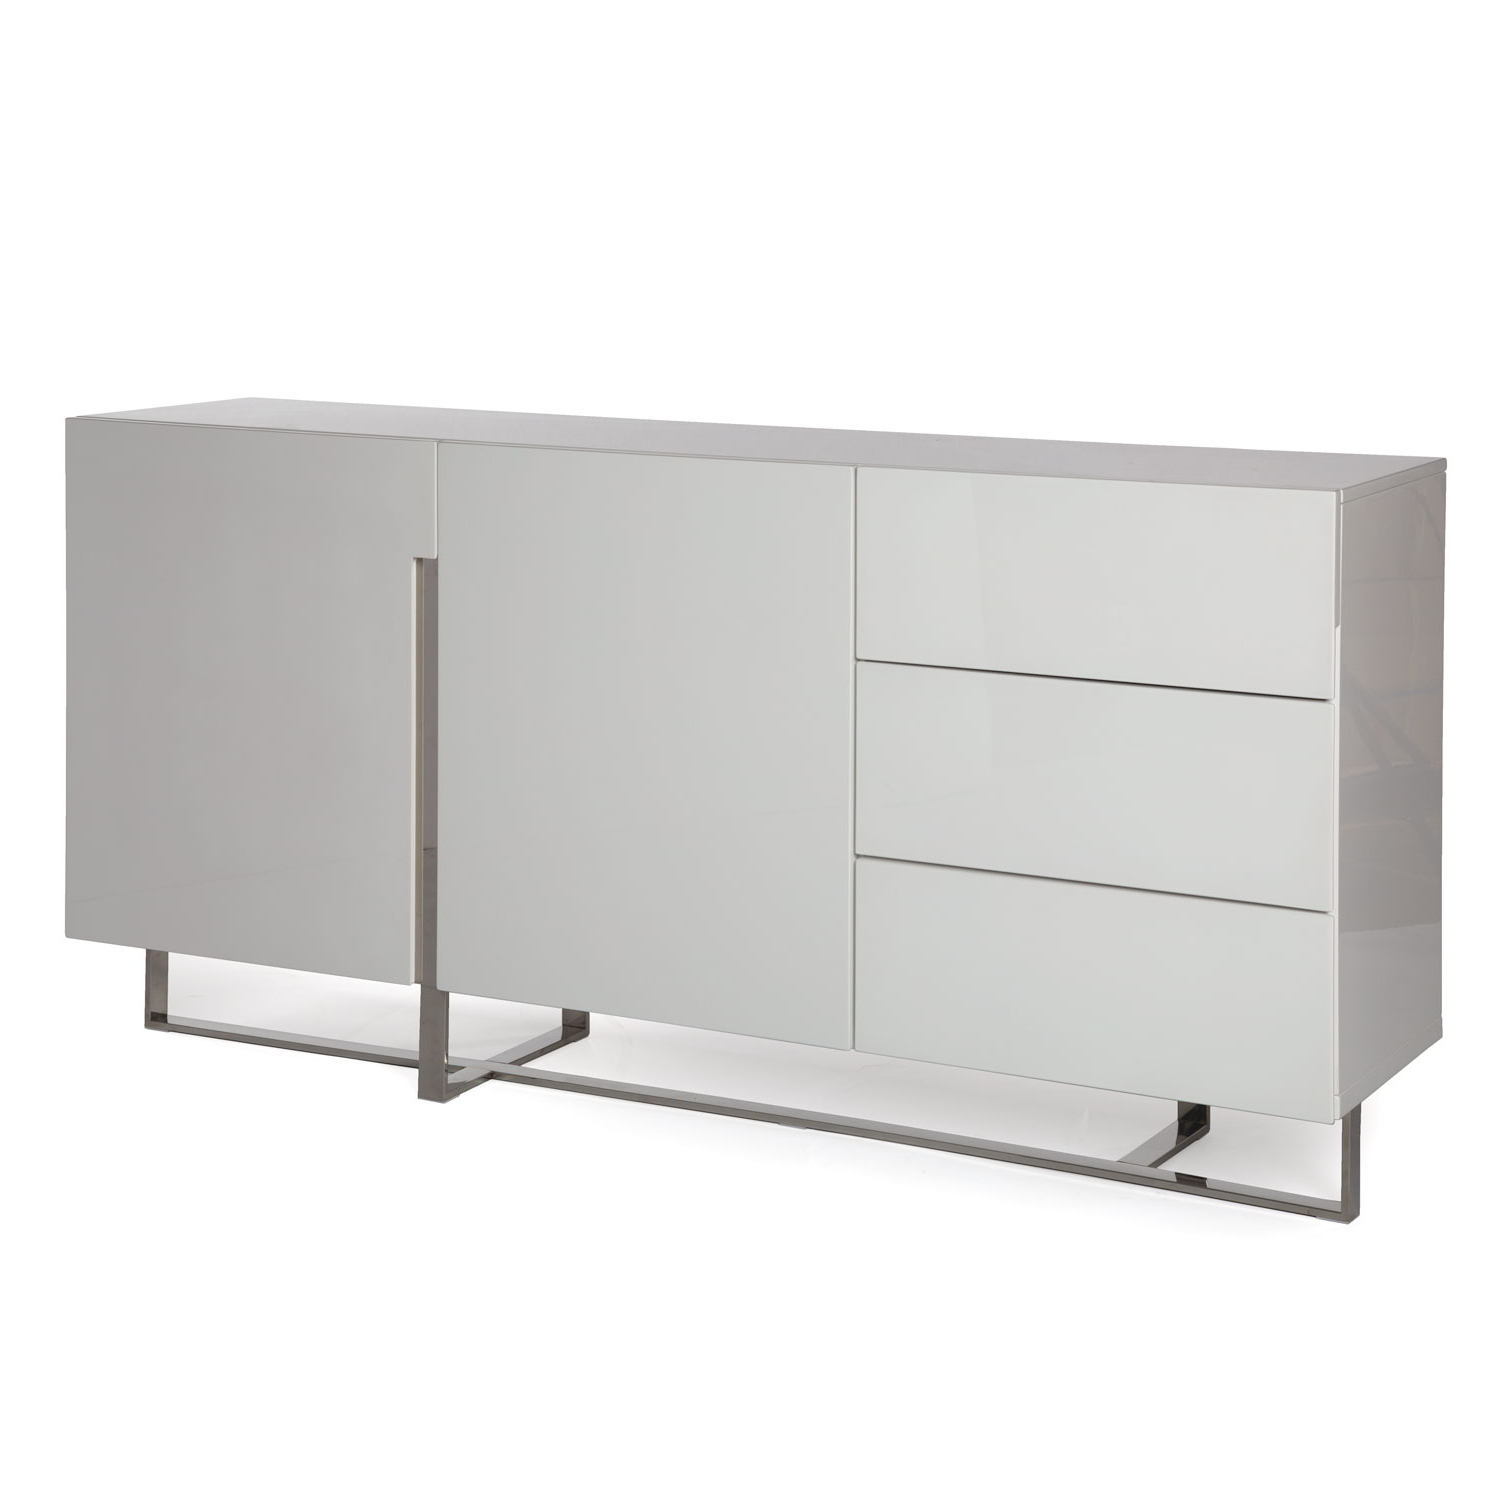 Voco | Sideboard – High Gloss White Throughout White Wood And Chrome Metal High Gloss Buffets (View 5 of 20)